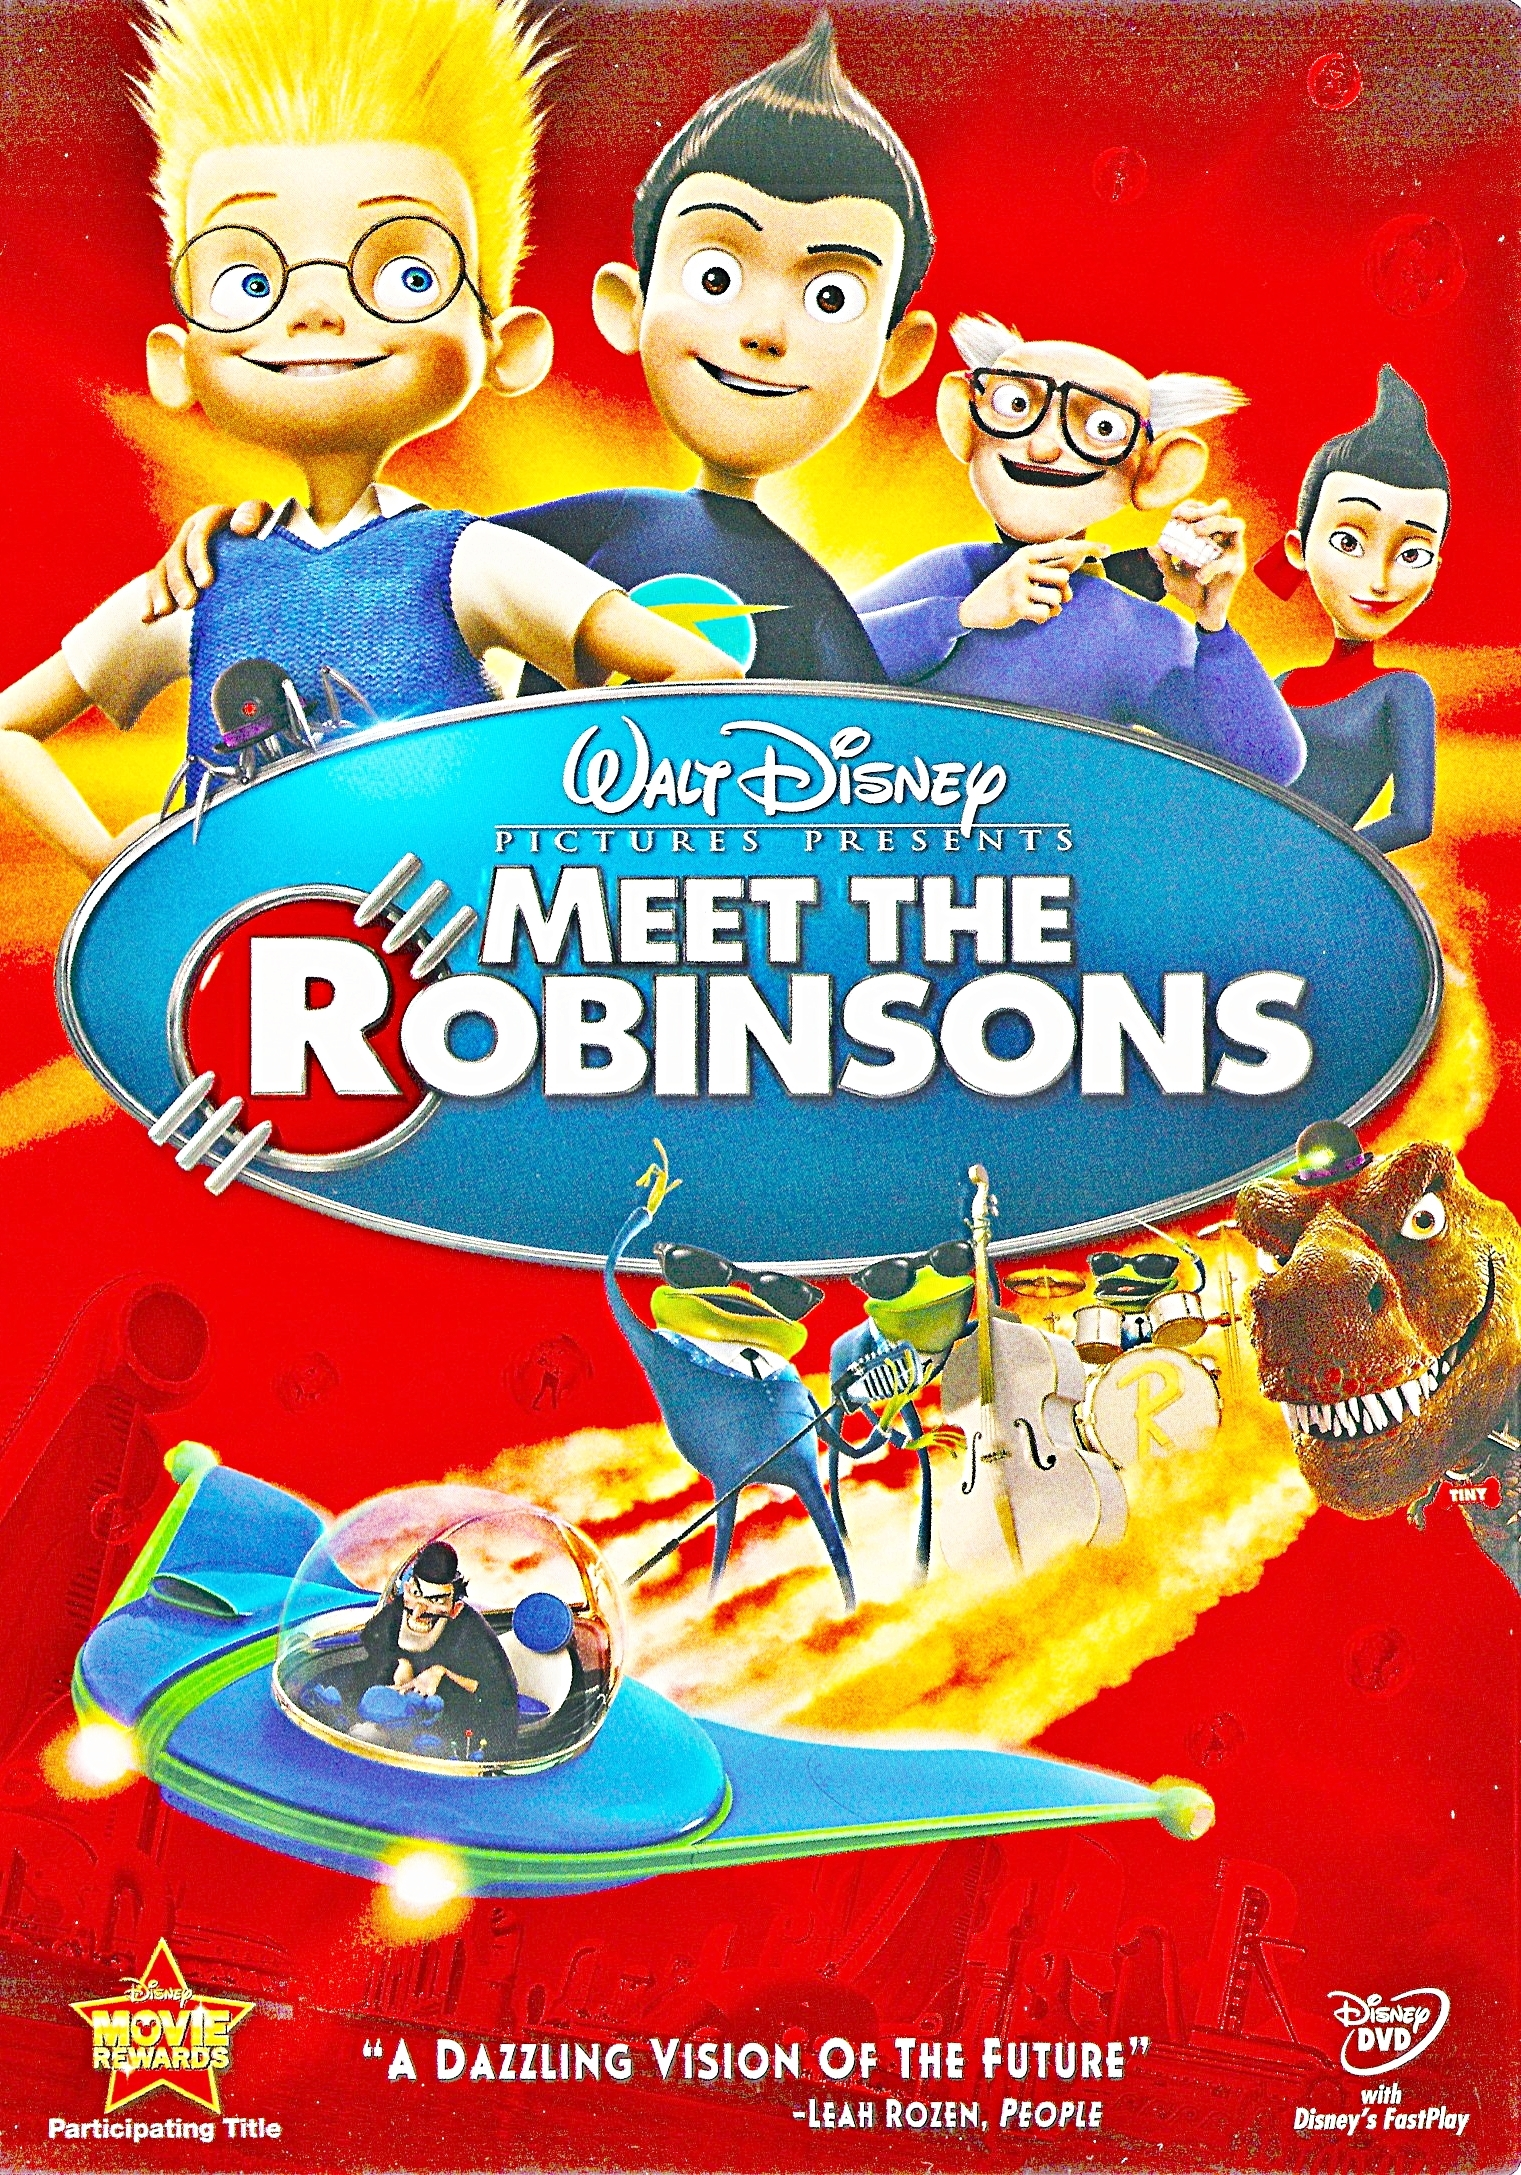 meet the robinson full movie tagalog